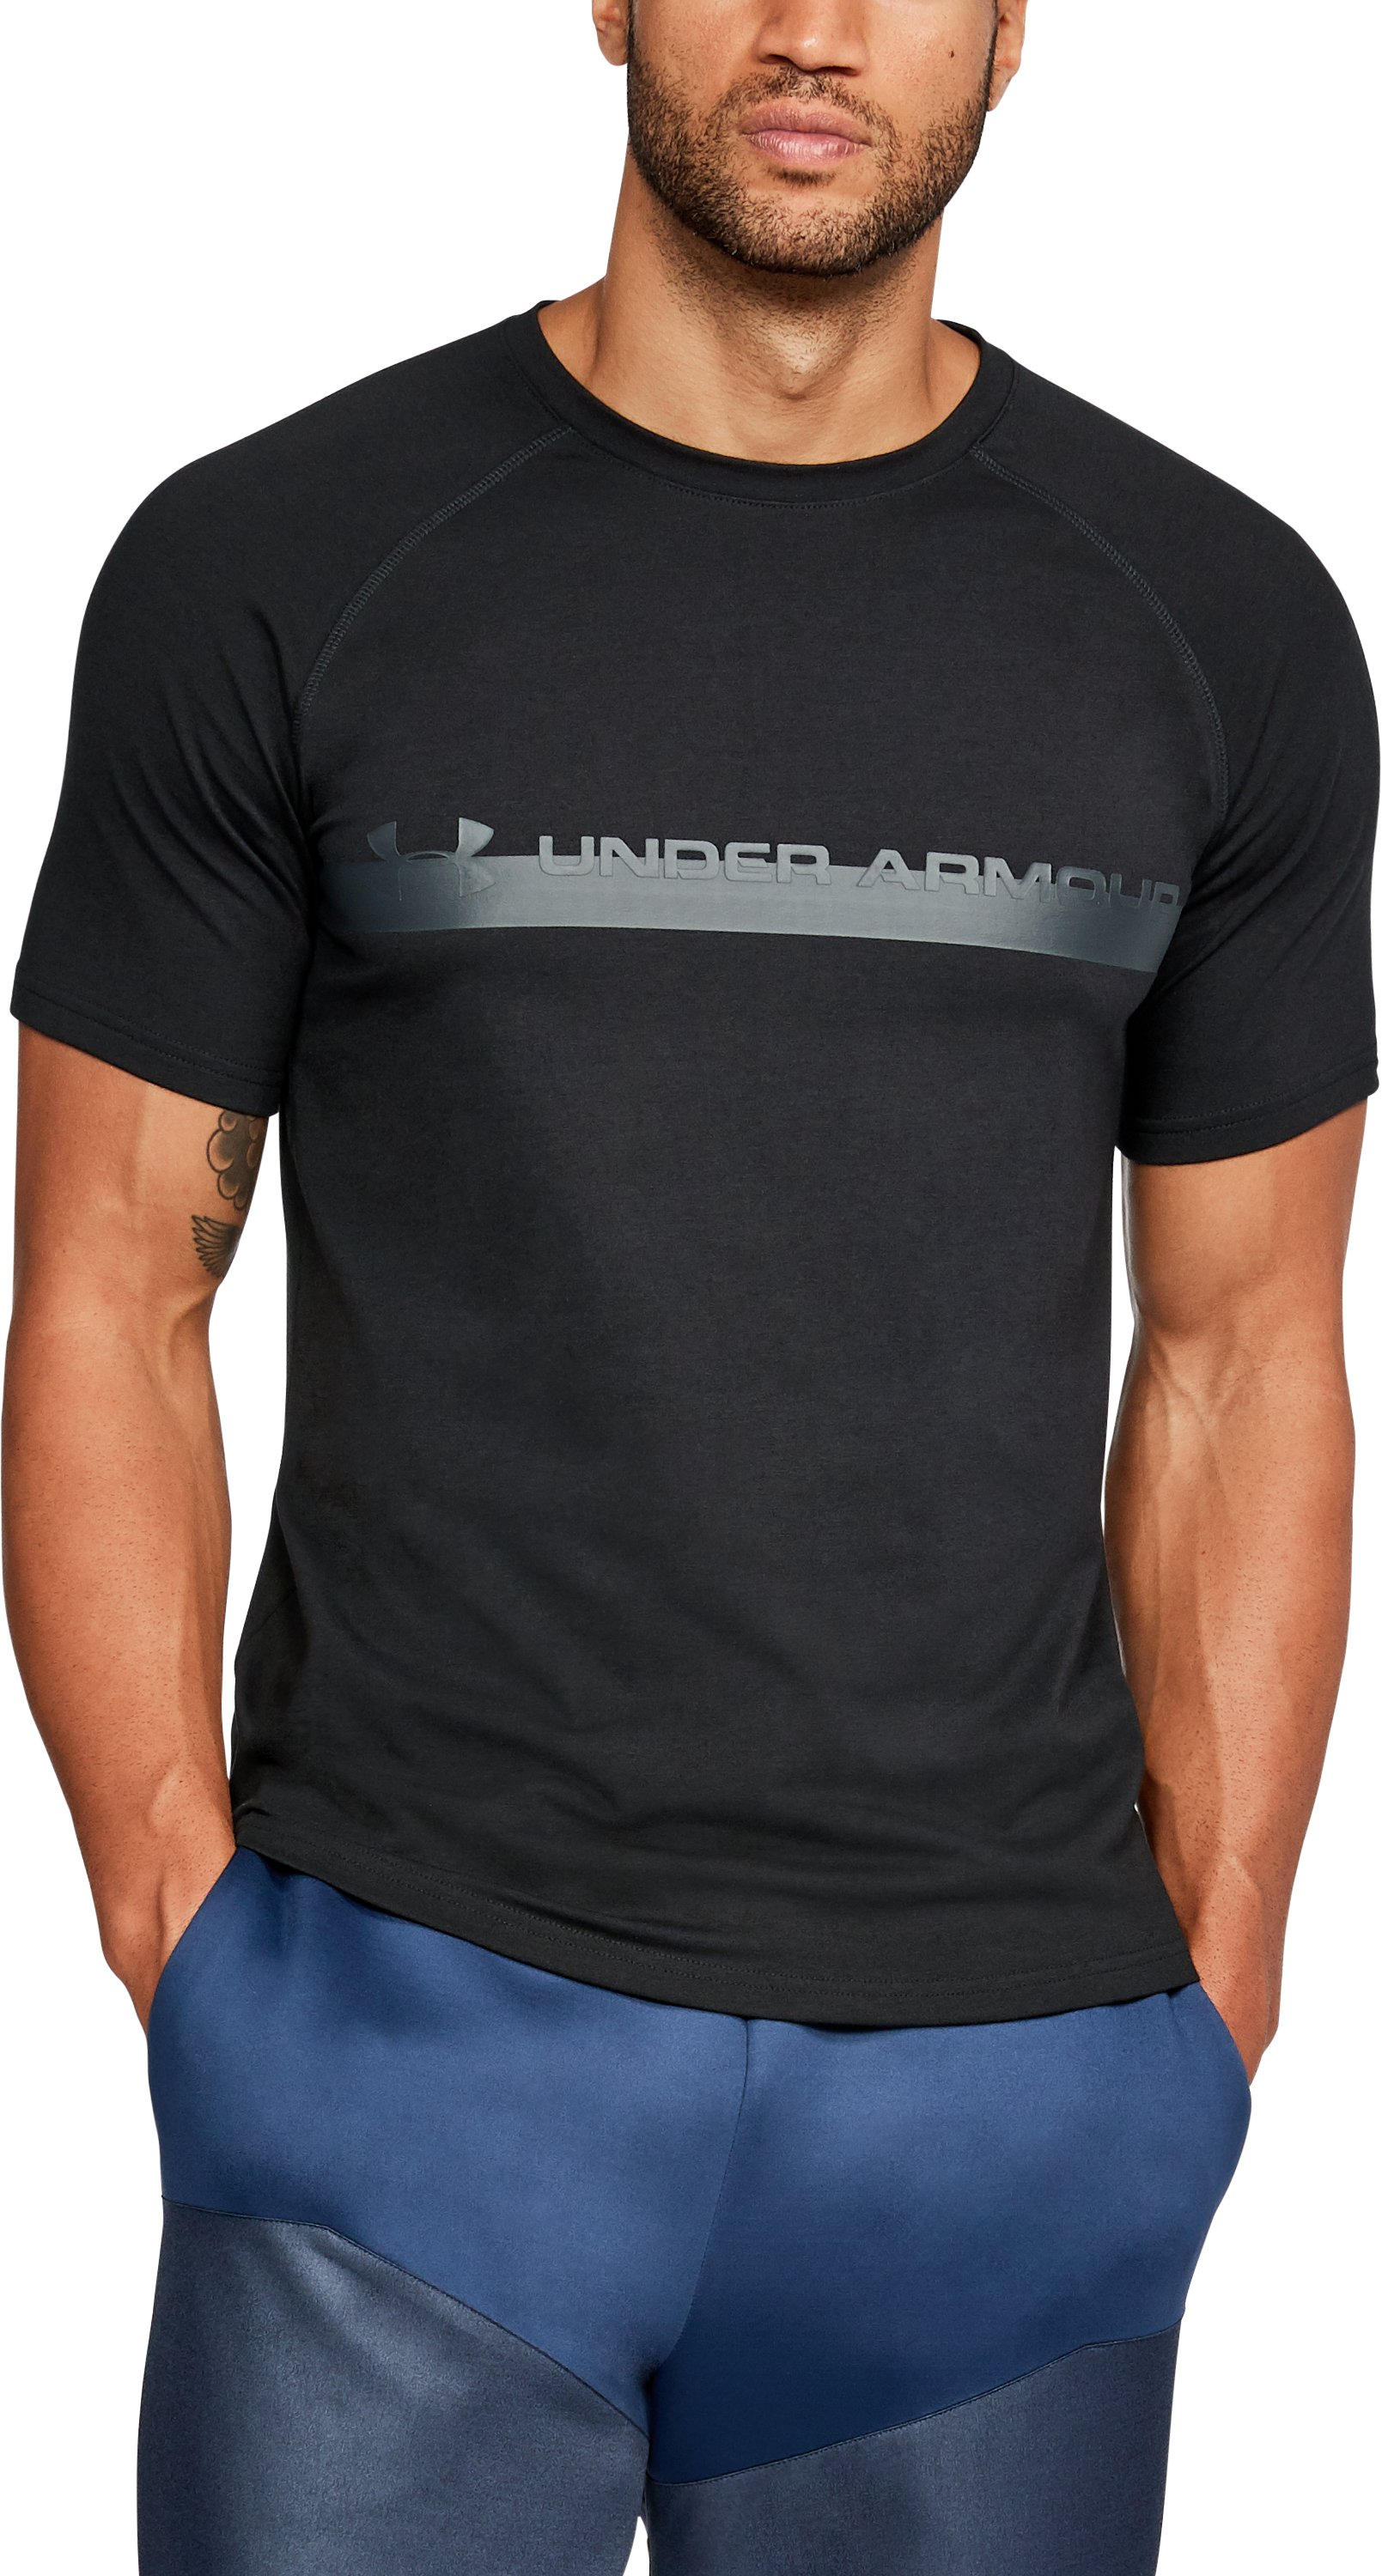 kids graphic t-shirts  Men's UA Unstoppable Graphic T-Shirt Great Shirt for Gym or Casual...It's a comfortable soft shirt that's washed up great....Good looking shirt by Under Armour.